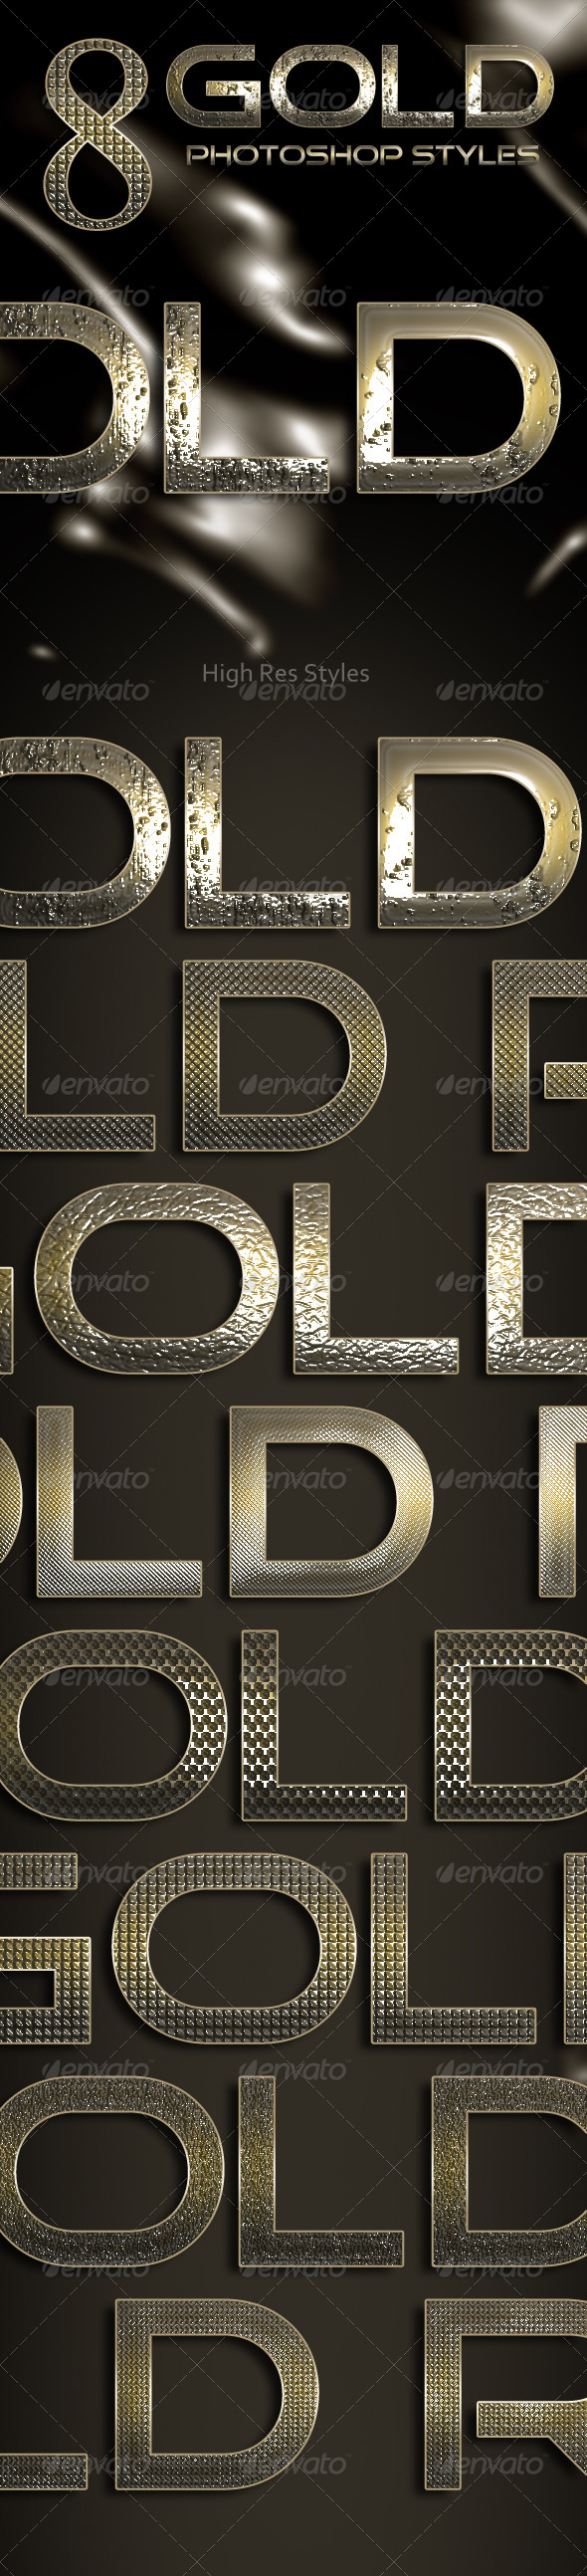 GraphicRiver 8 Gold Photoshop Styles 4753571